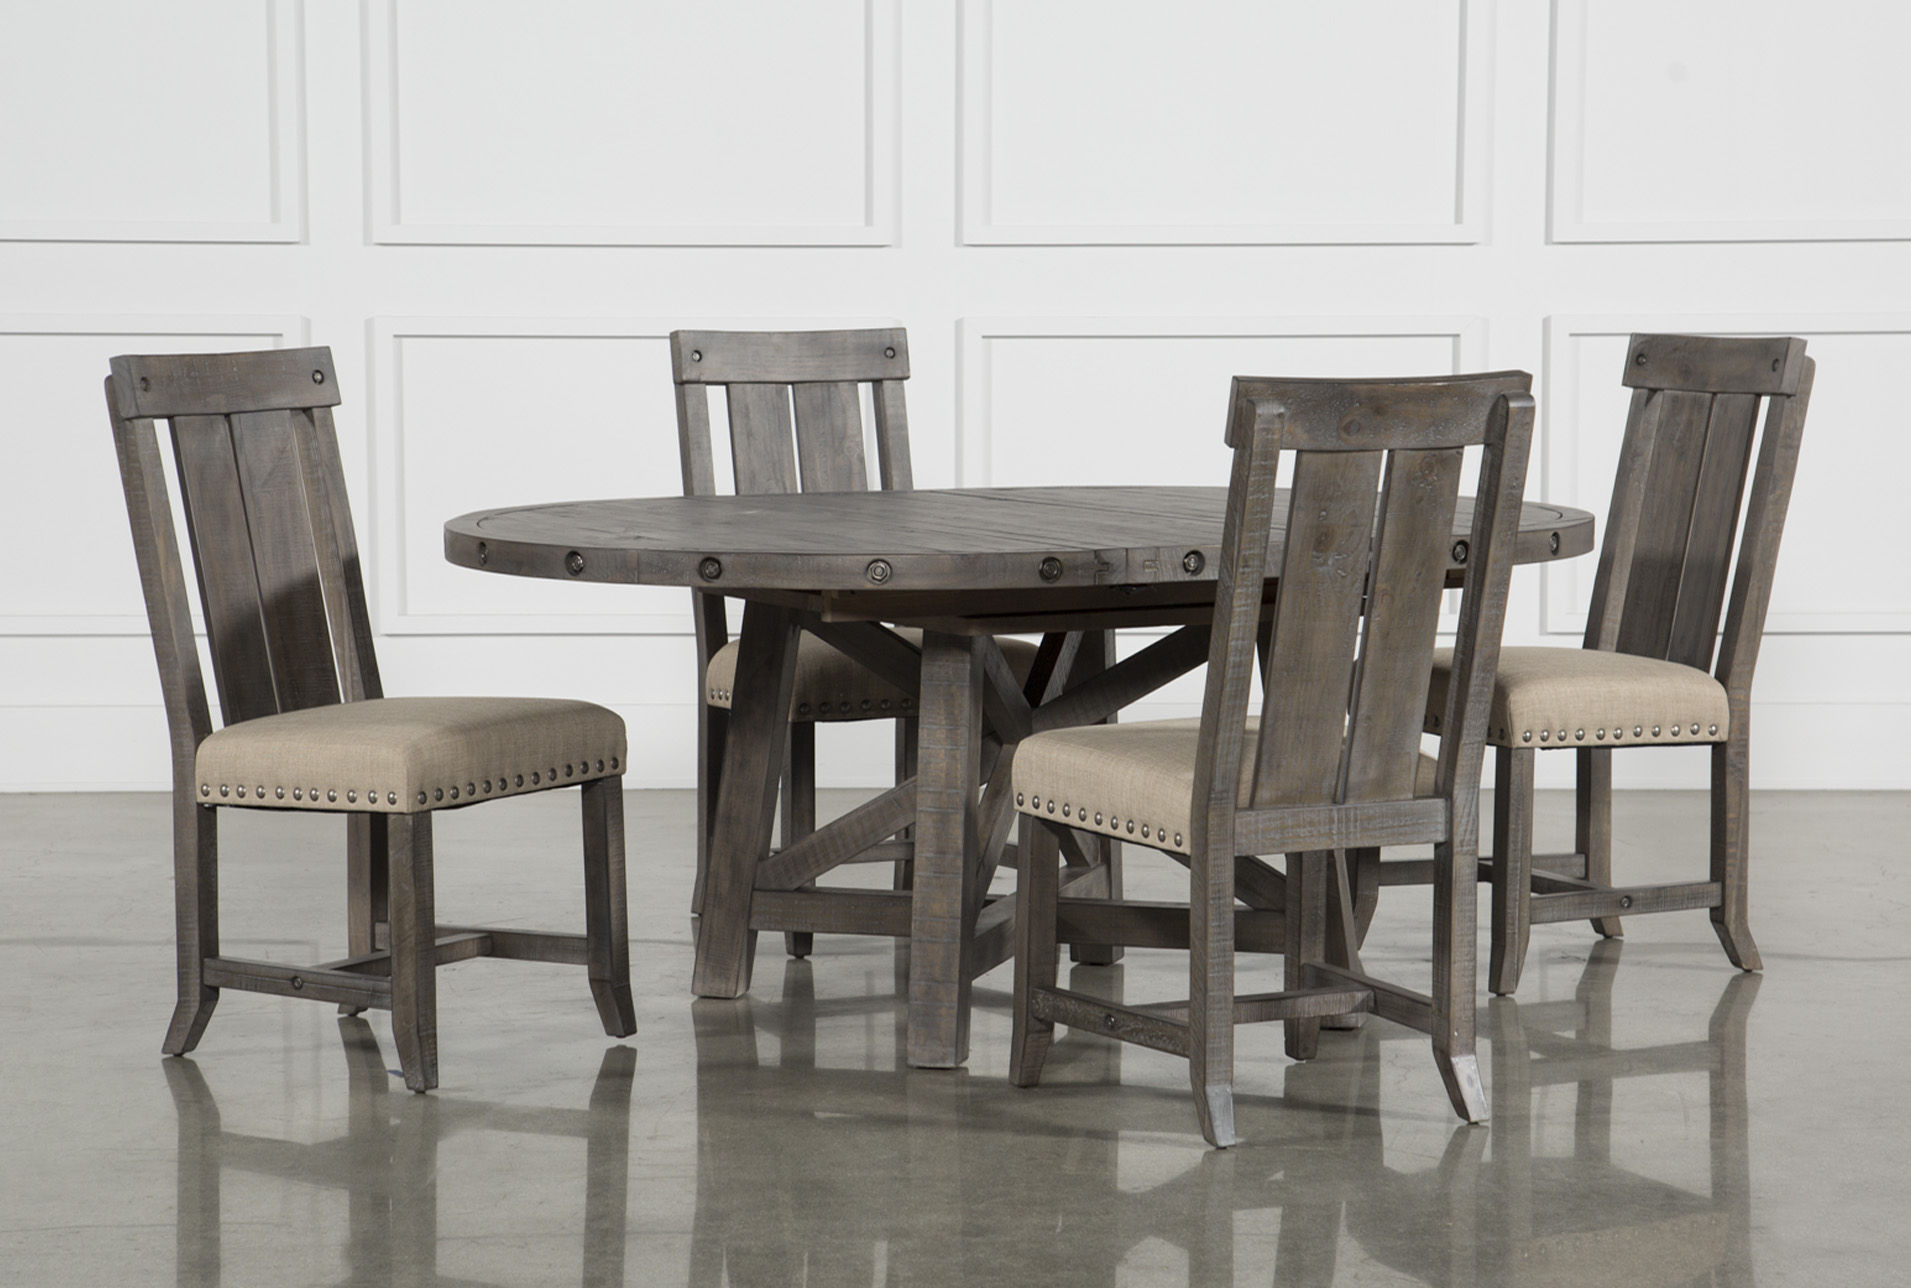 Dining Room Chairs Set Of 4 Jaxon Grey 5 Piece Round Extension Dining Set W Wood Chairs